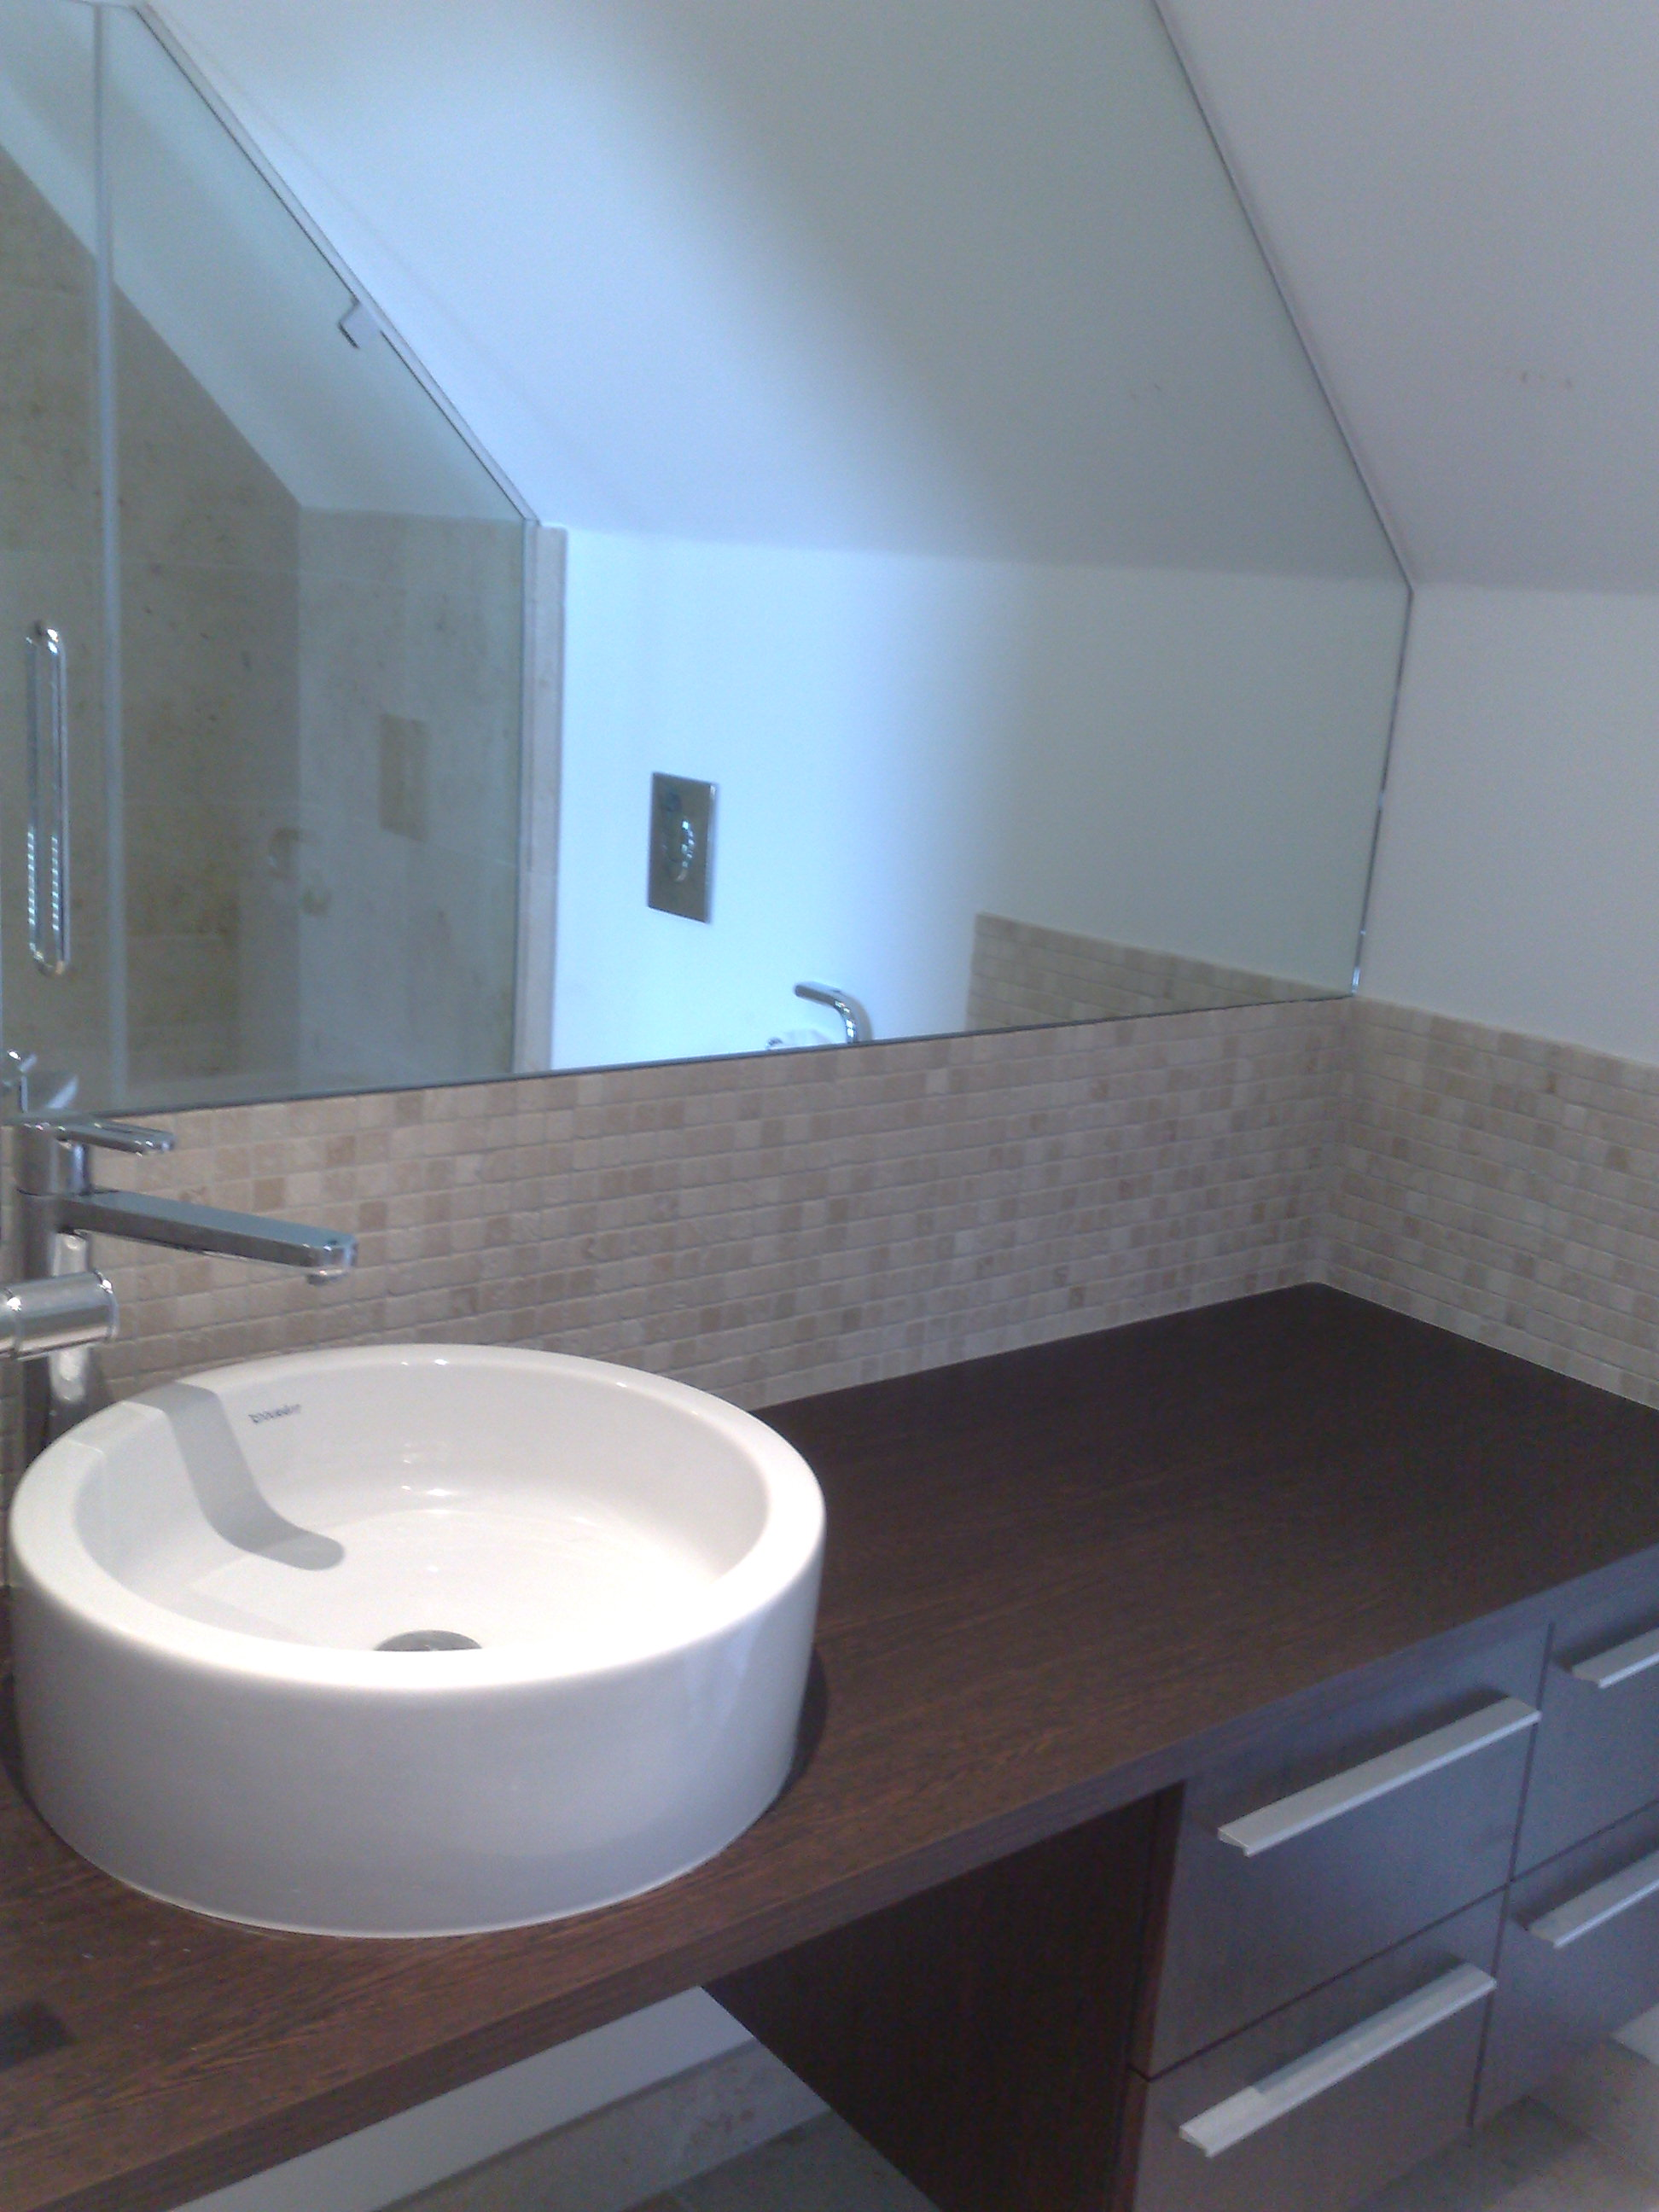 Countertop Basin and Bespoke Mirror.